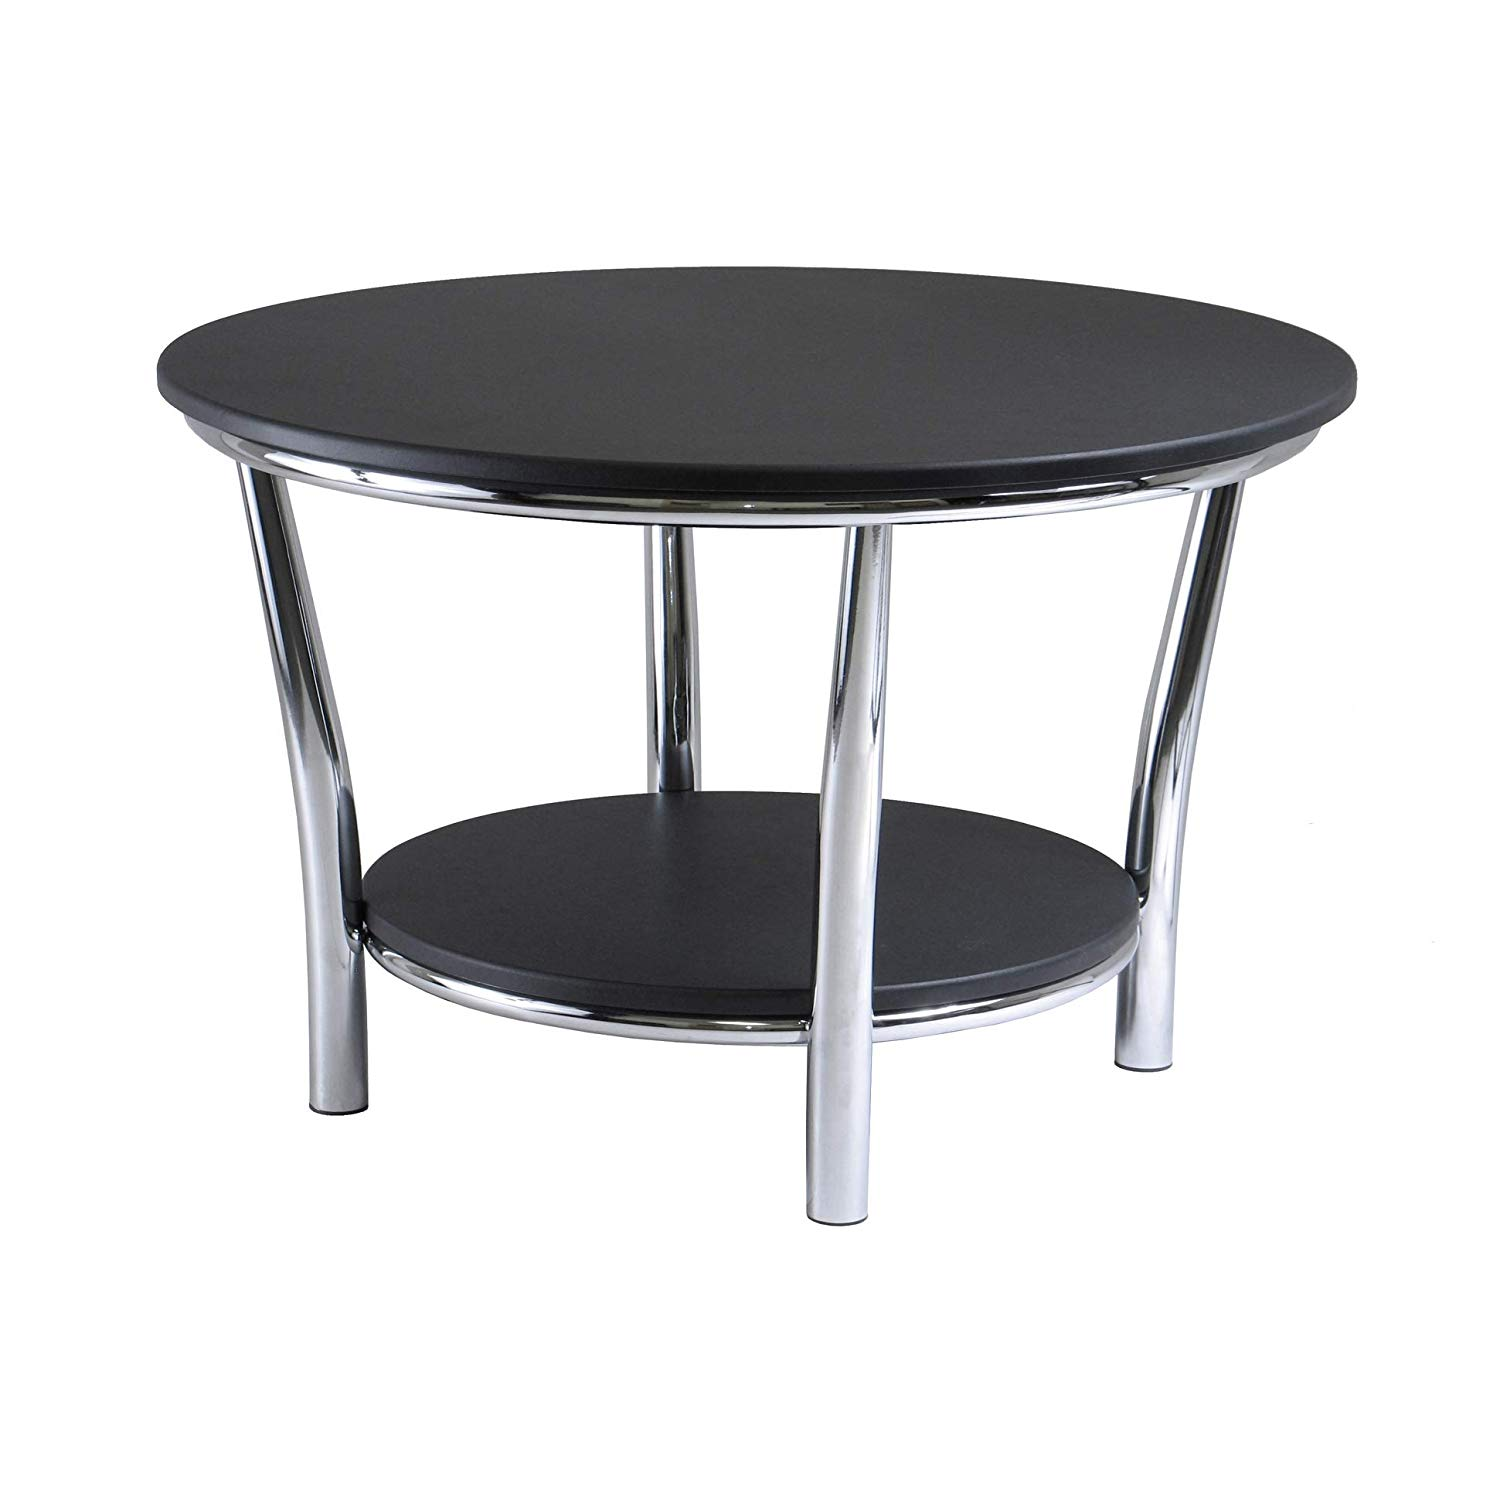 winsome wood occasional table black metal large end kitchen dining lazy boy stationary chairs indoor dog house furniture french style bedroom trunk coffee toronto and white marble